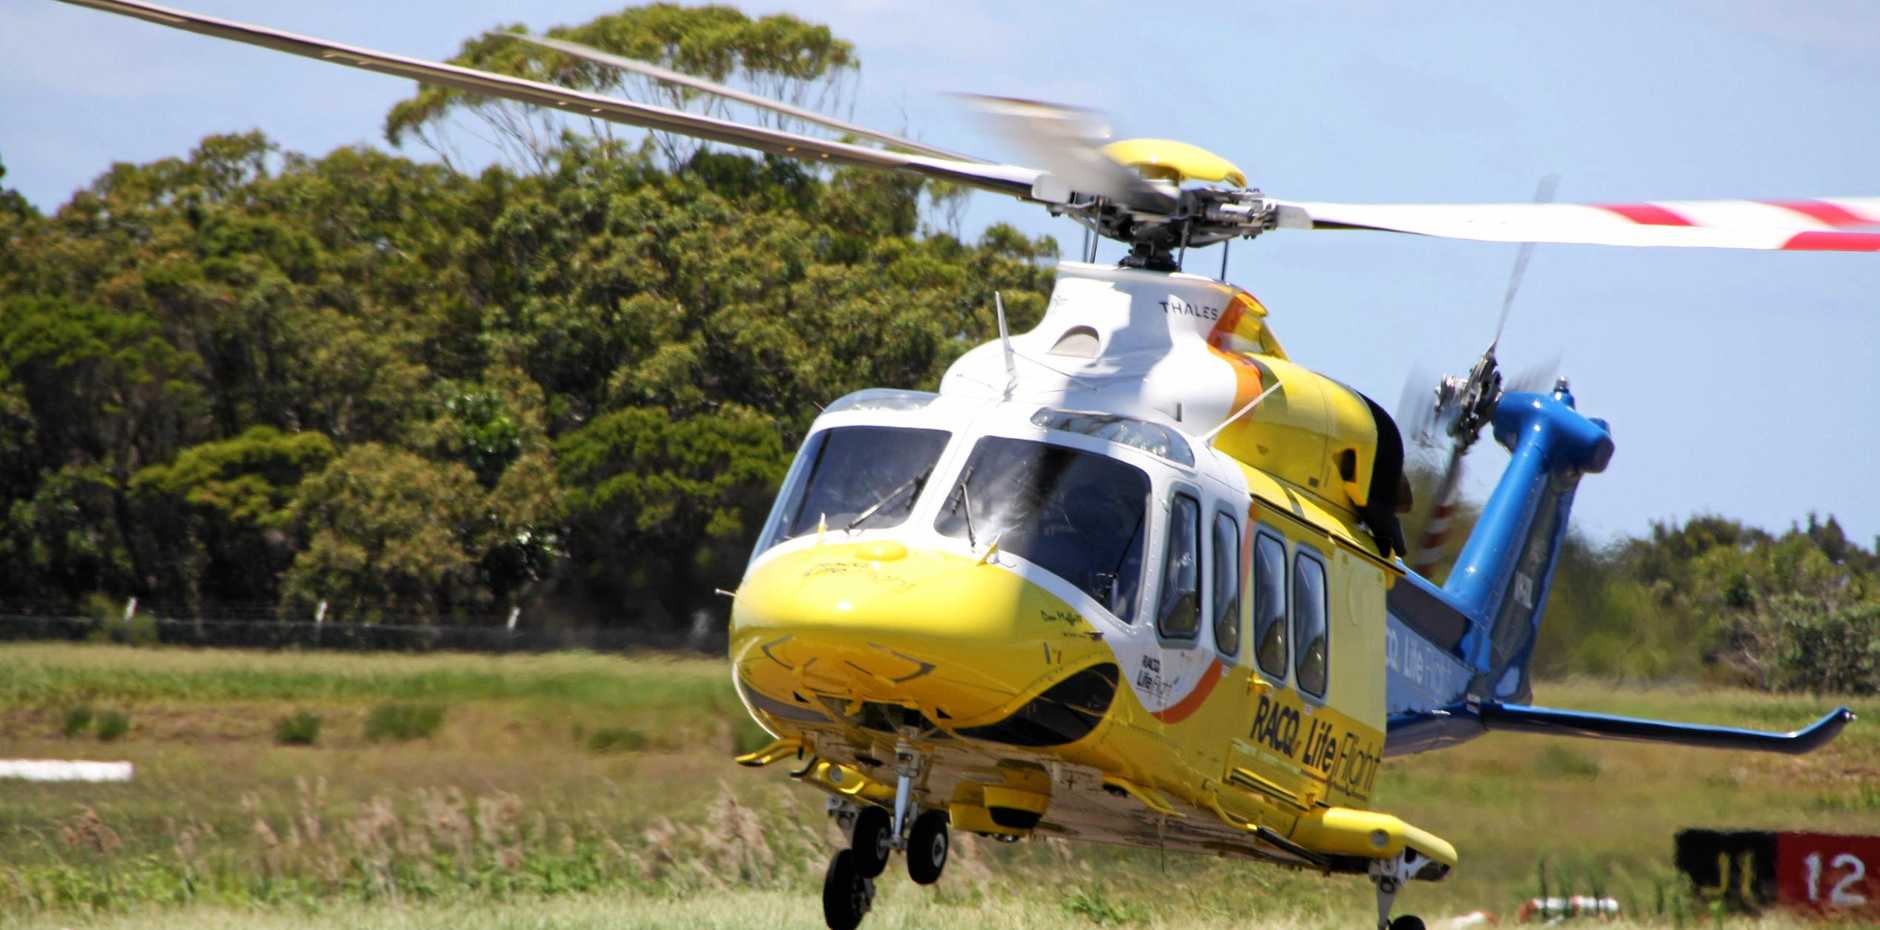 The RACQ LifeFlight AW139 Rescue Helicopter returns to Sunshine Coast Airport after an emergency medical flight from Gympie to Sunshine Coast University Hospital.